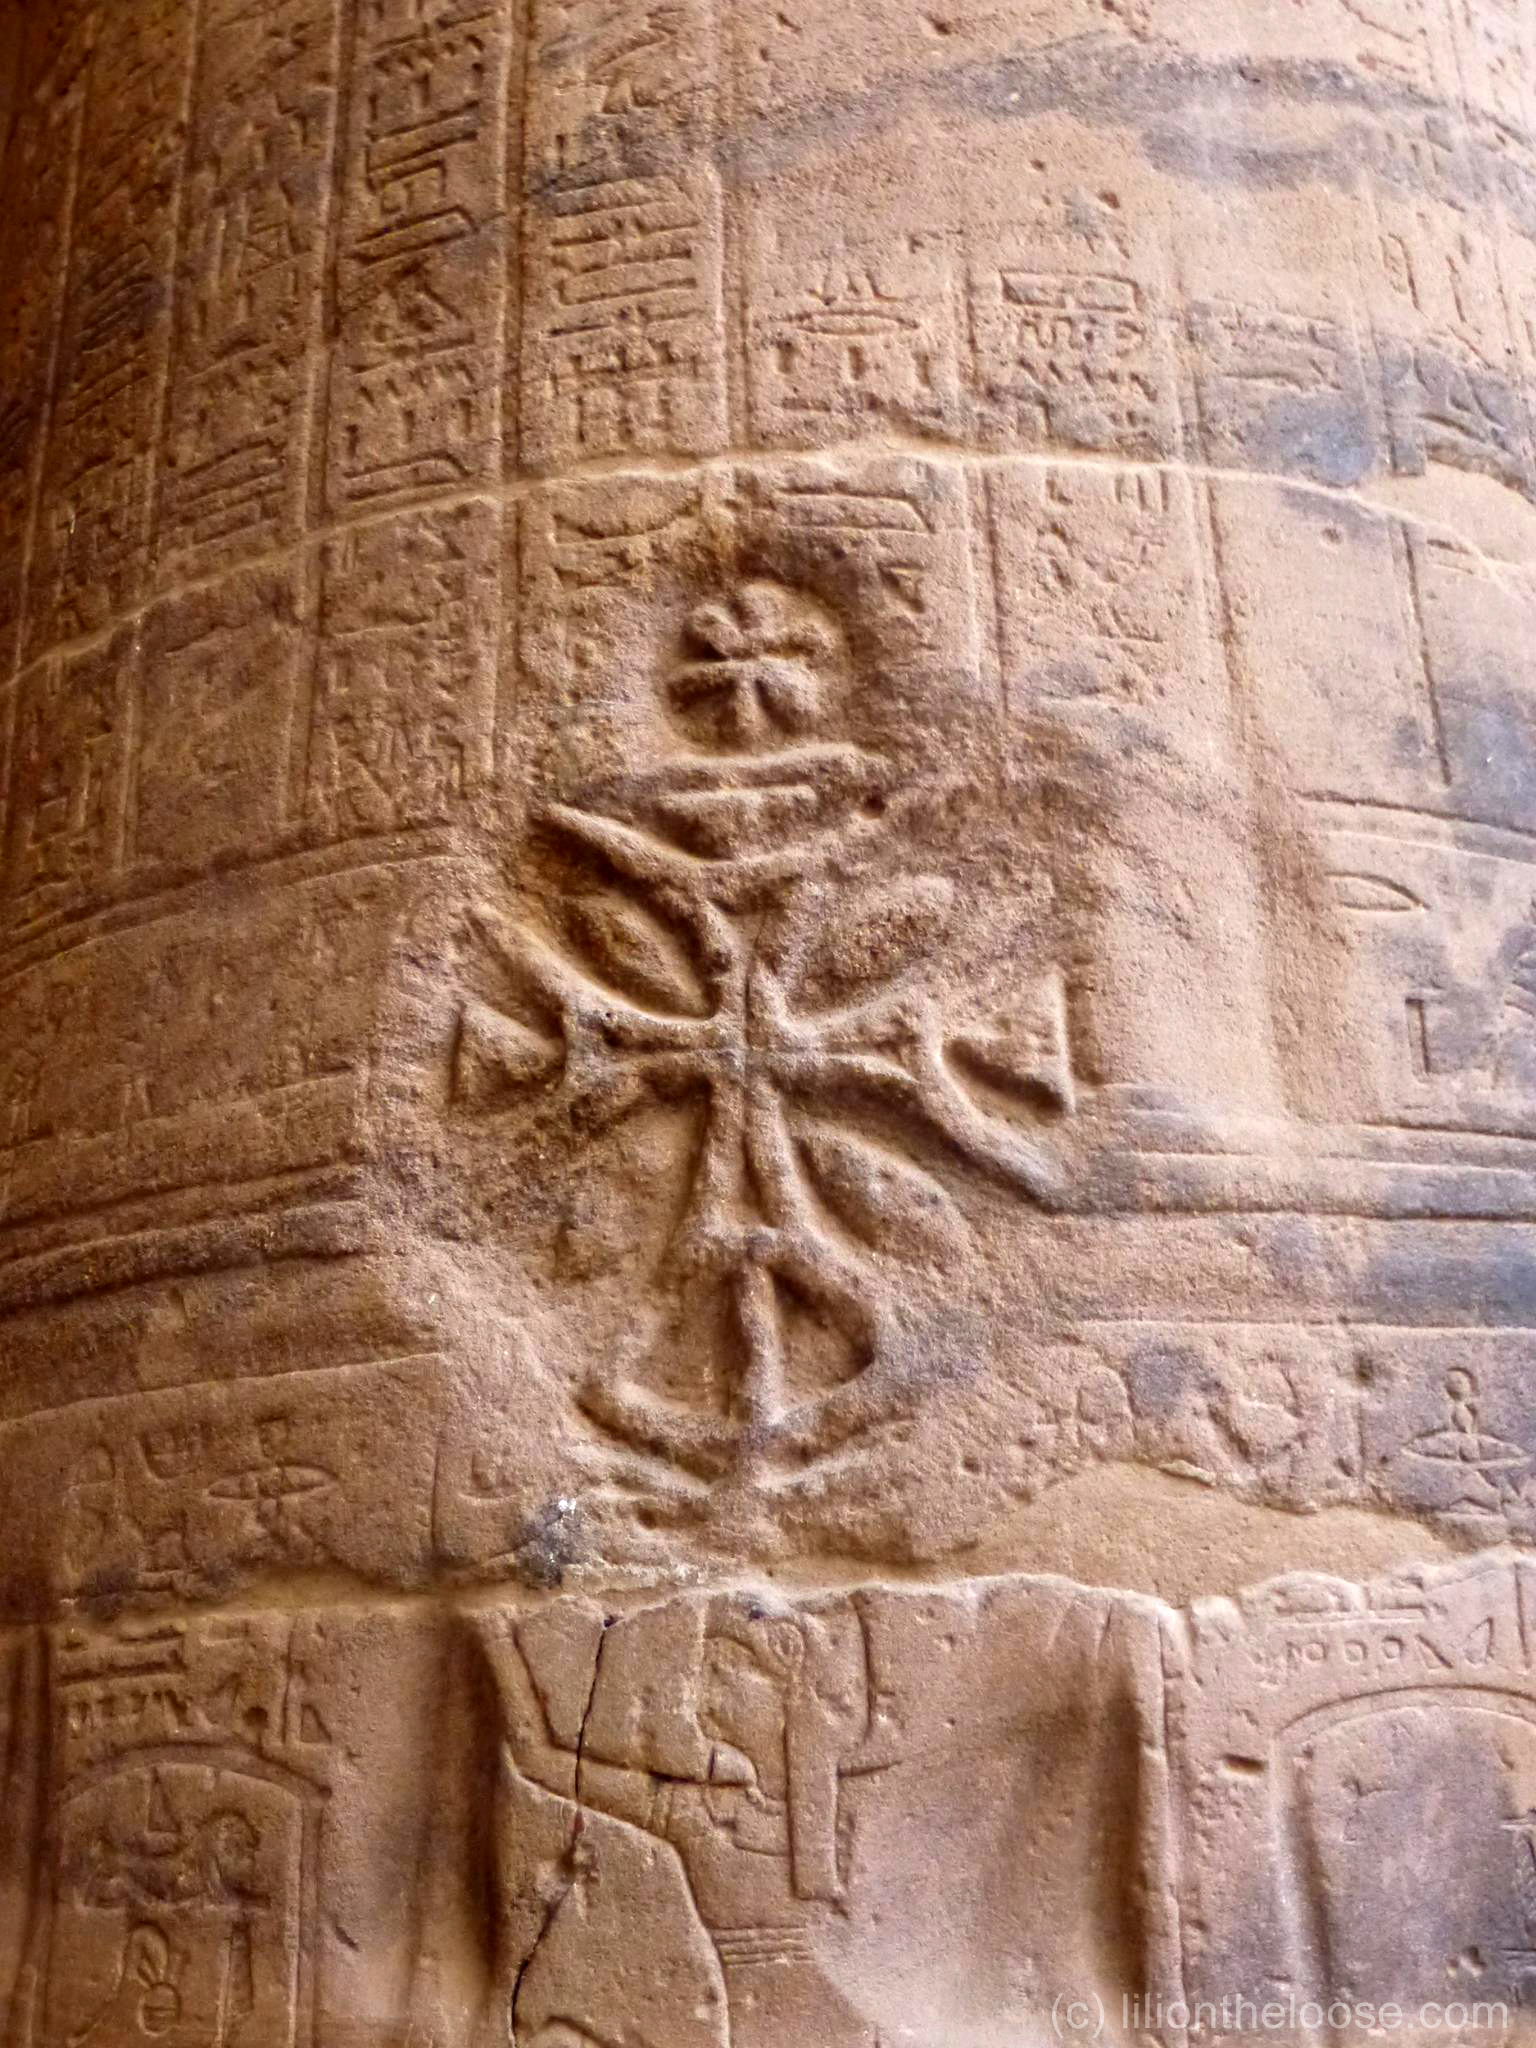 Coptic crosses at philae temple lili on the loose